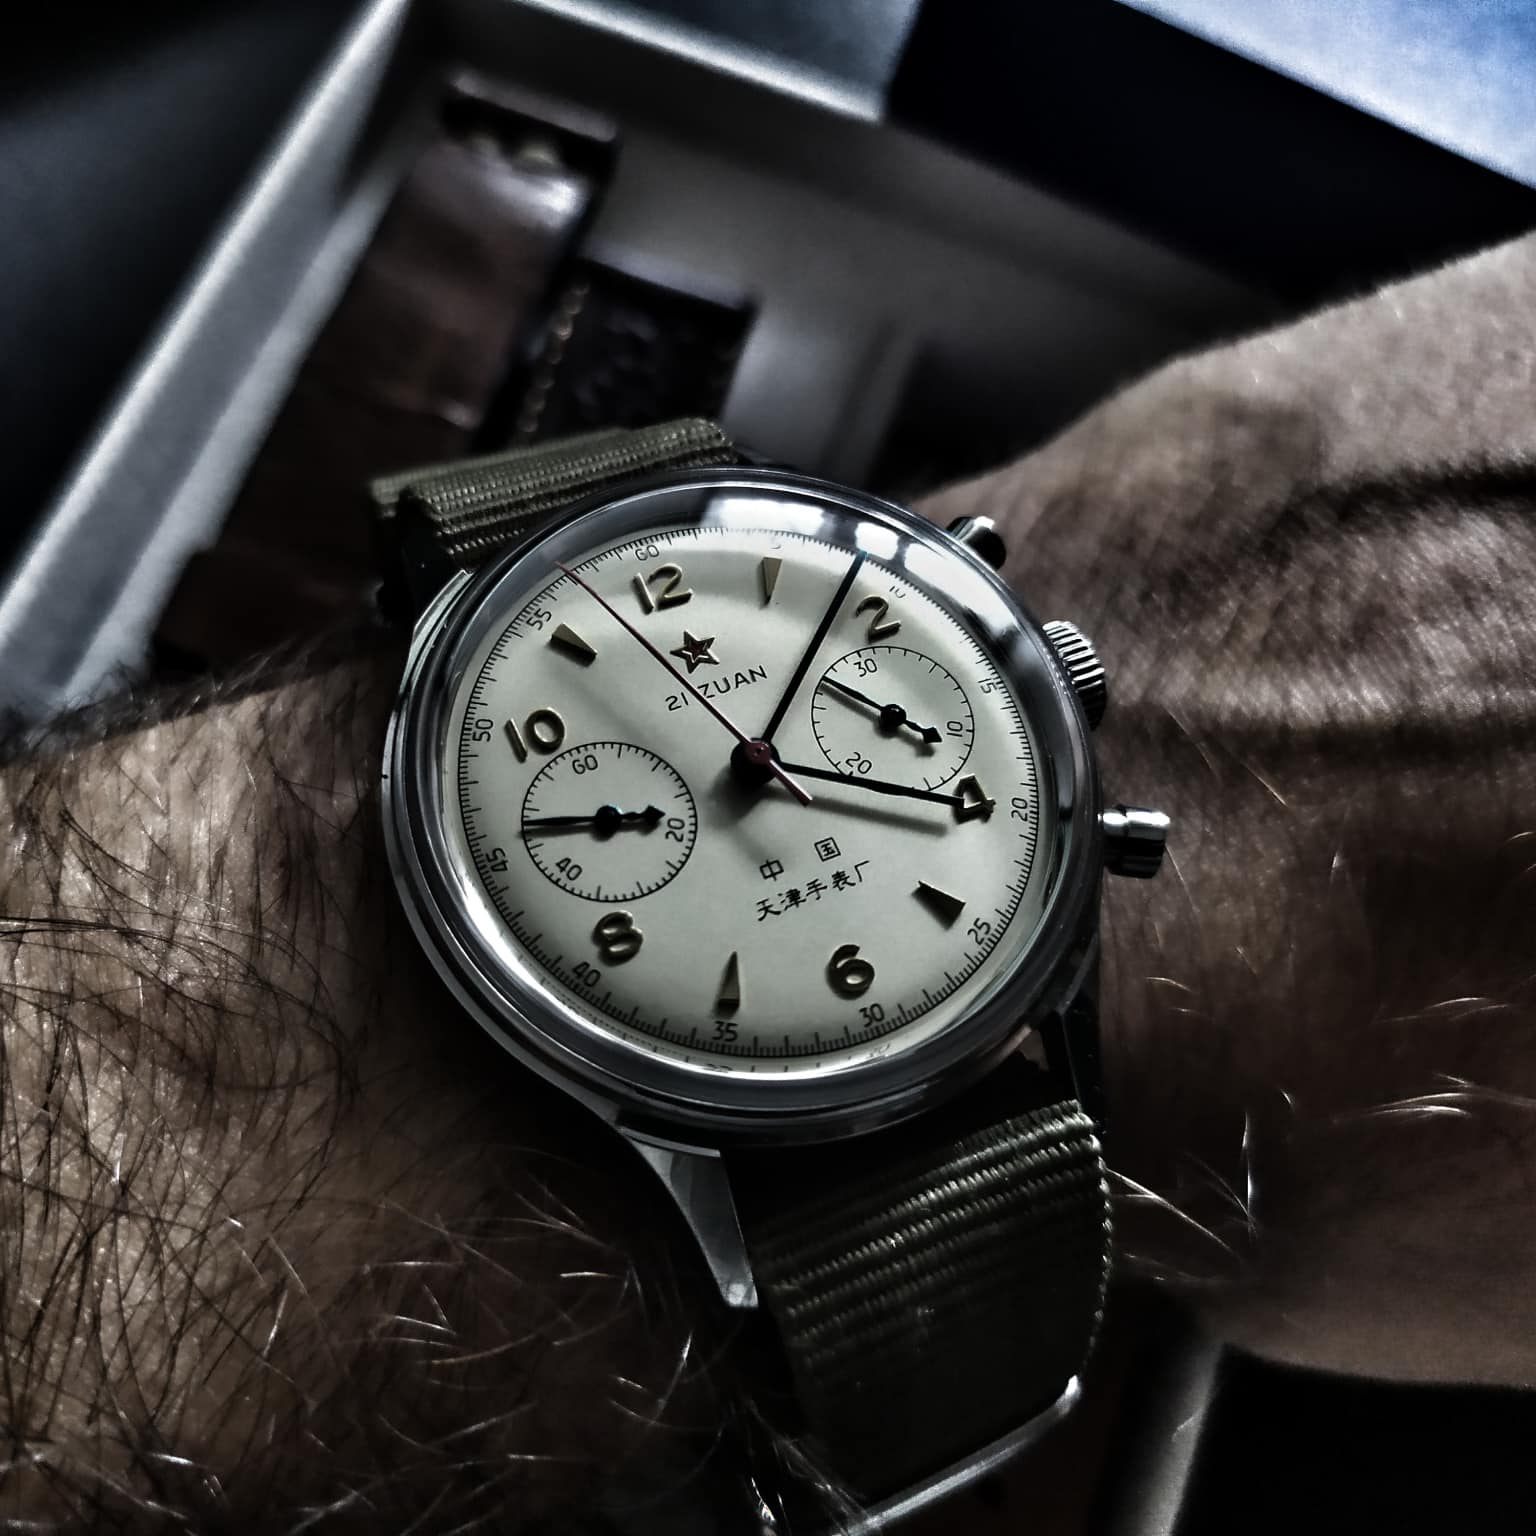 Review Seagull 1963 Air Force Chronograph